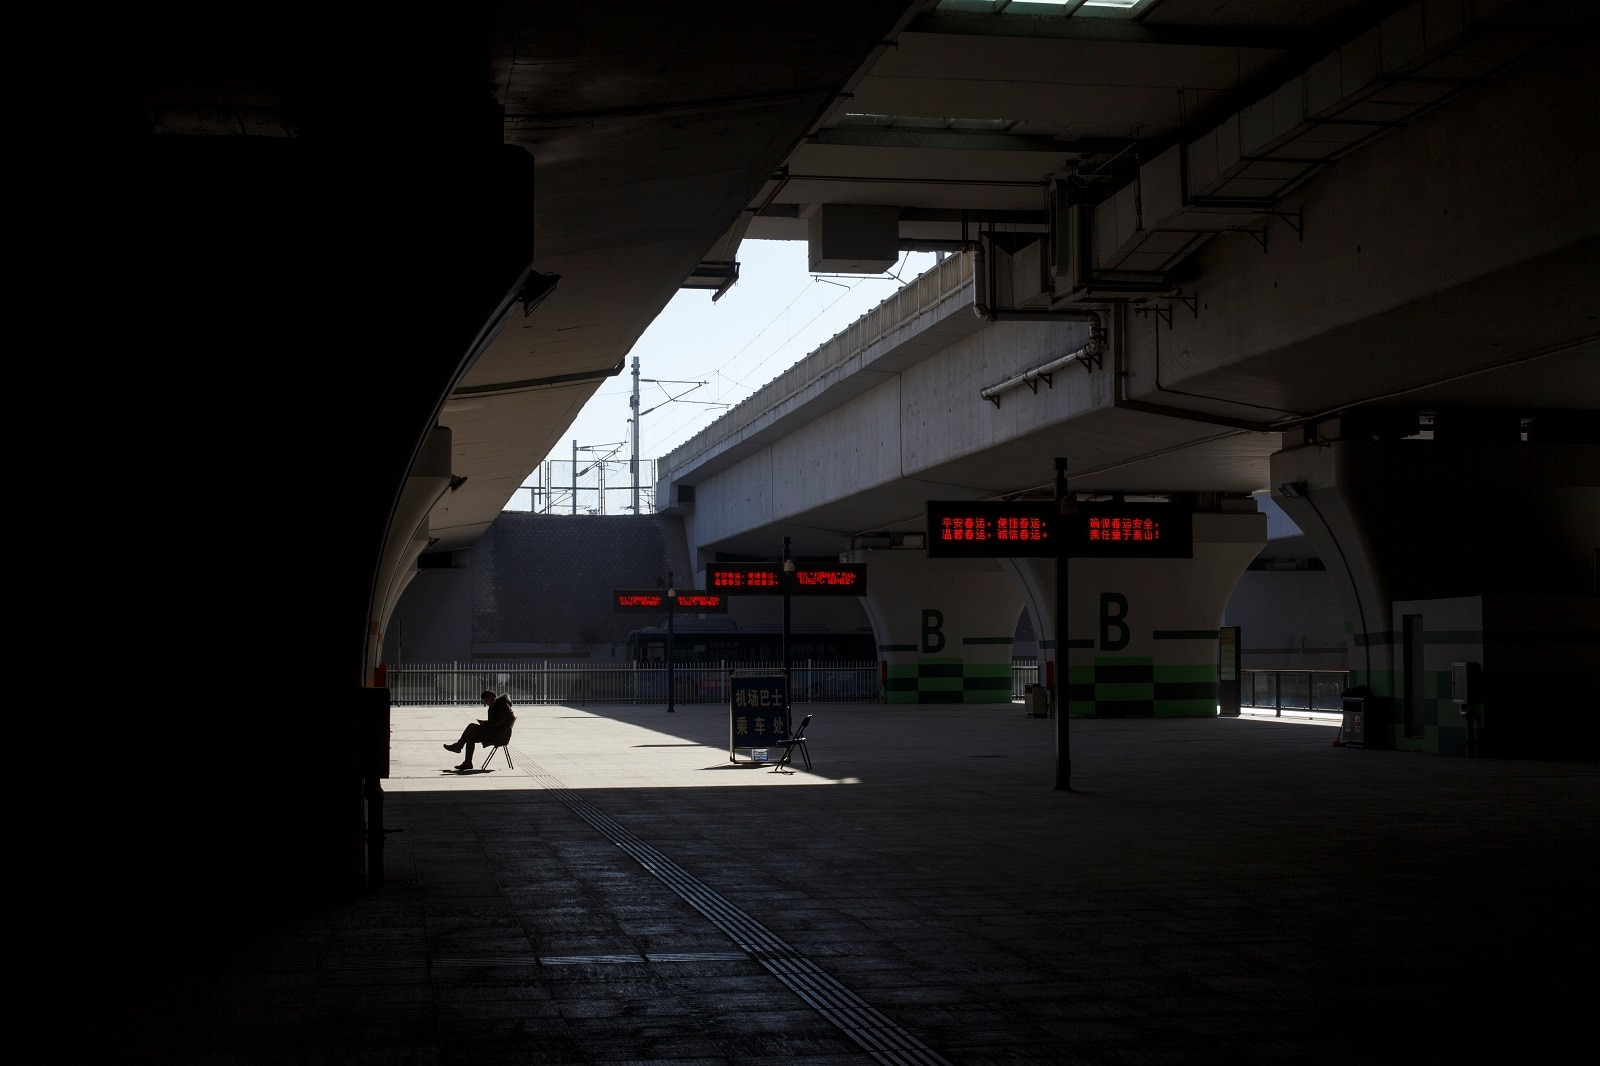 A man waits at a bus stop at a high-speed railway station in Zhengzhou, Henan province China January 22, 2019. REUTERS/Thomas Peter